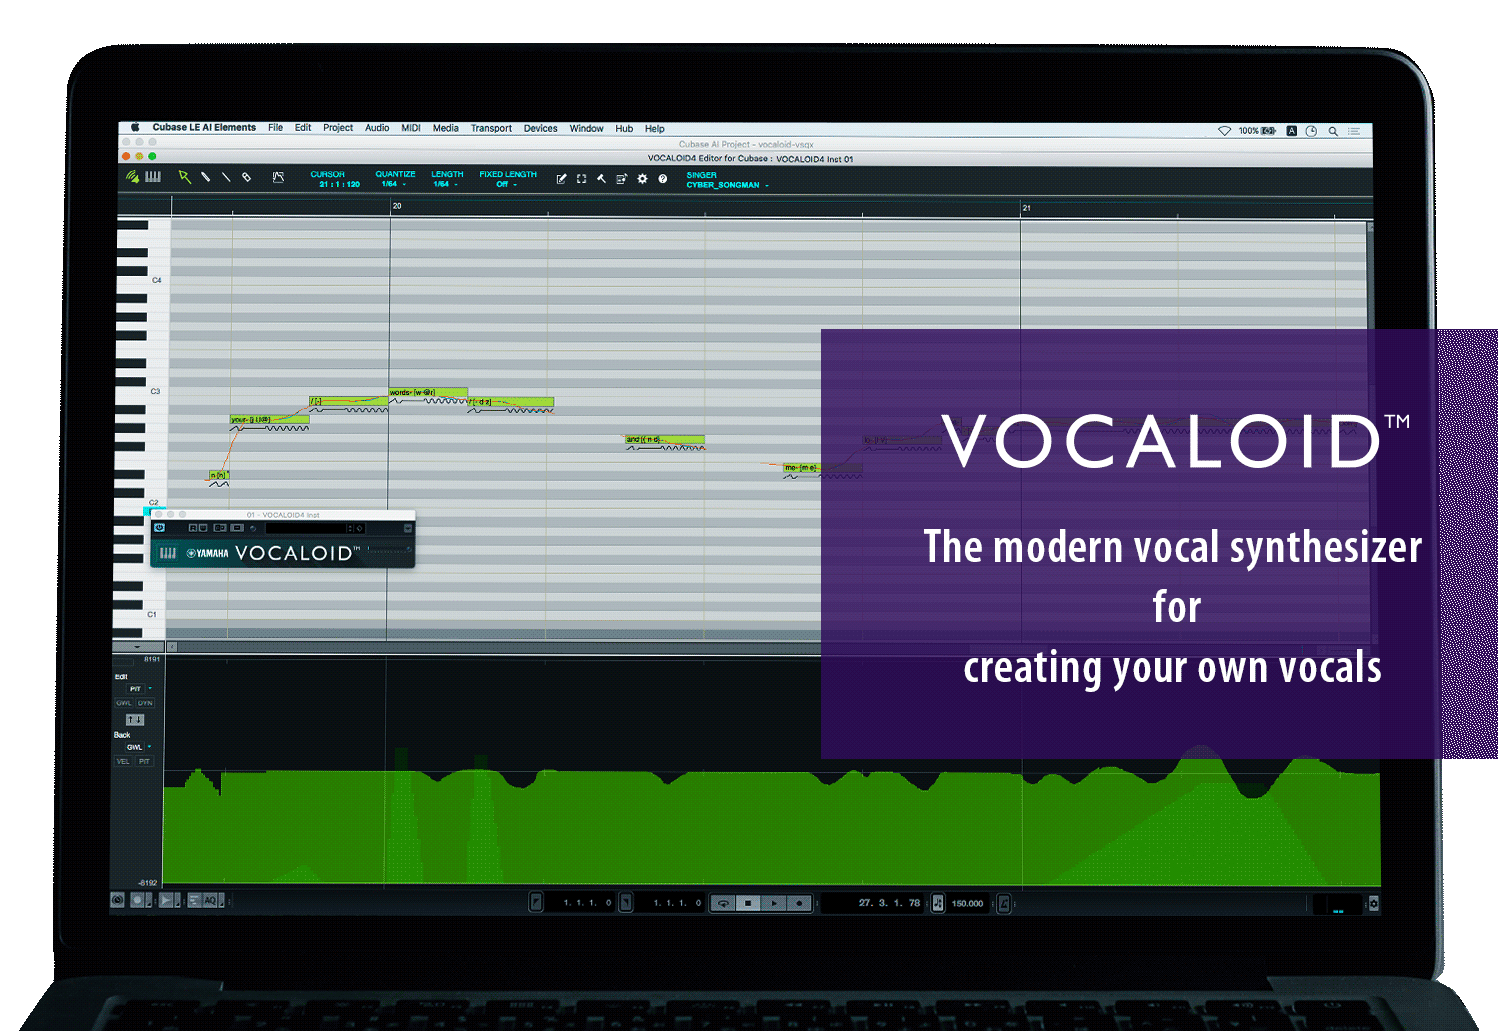 The Modern Vocal Synthesizer For Creating Your Own Vocals